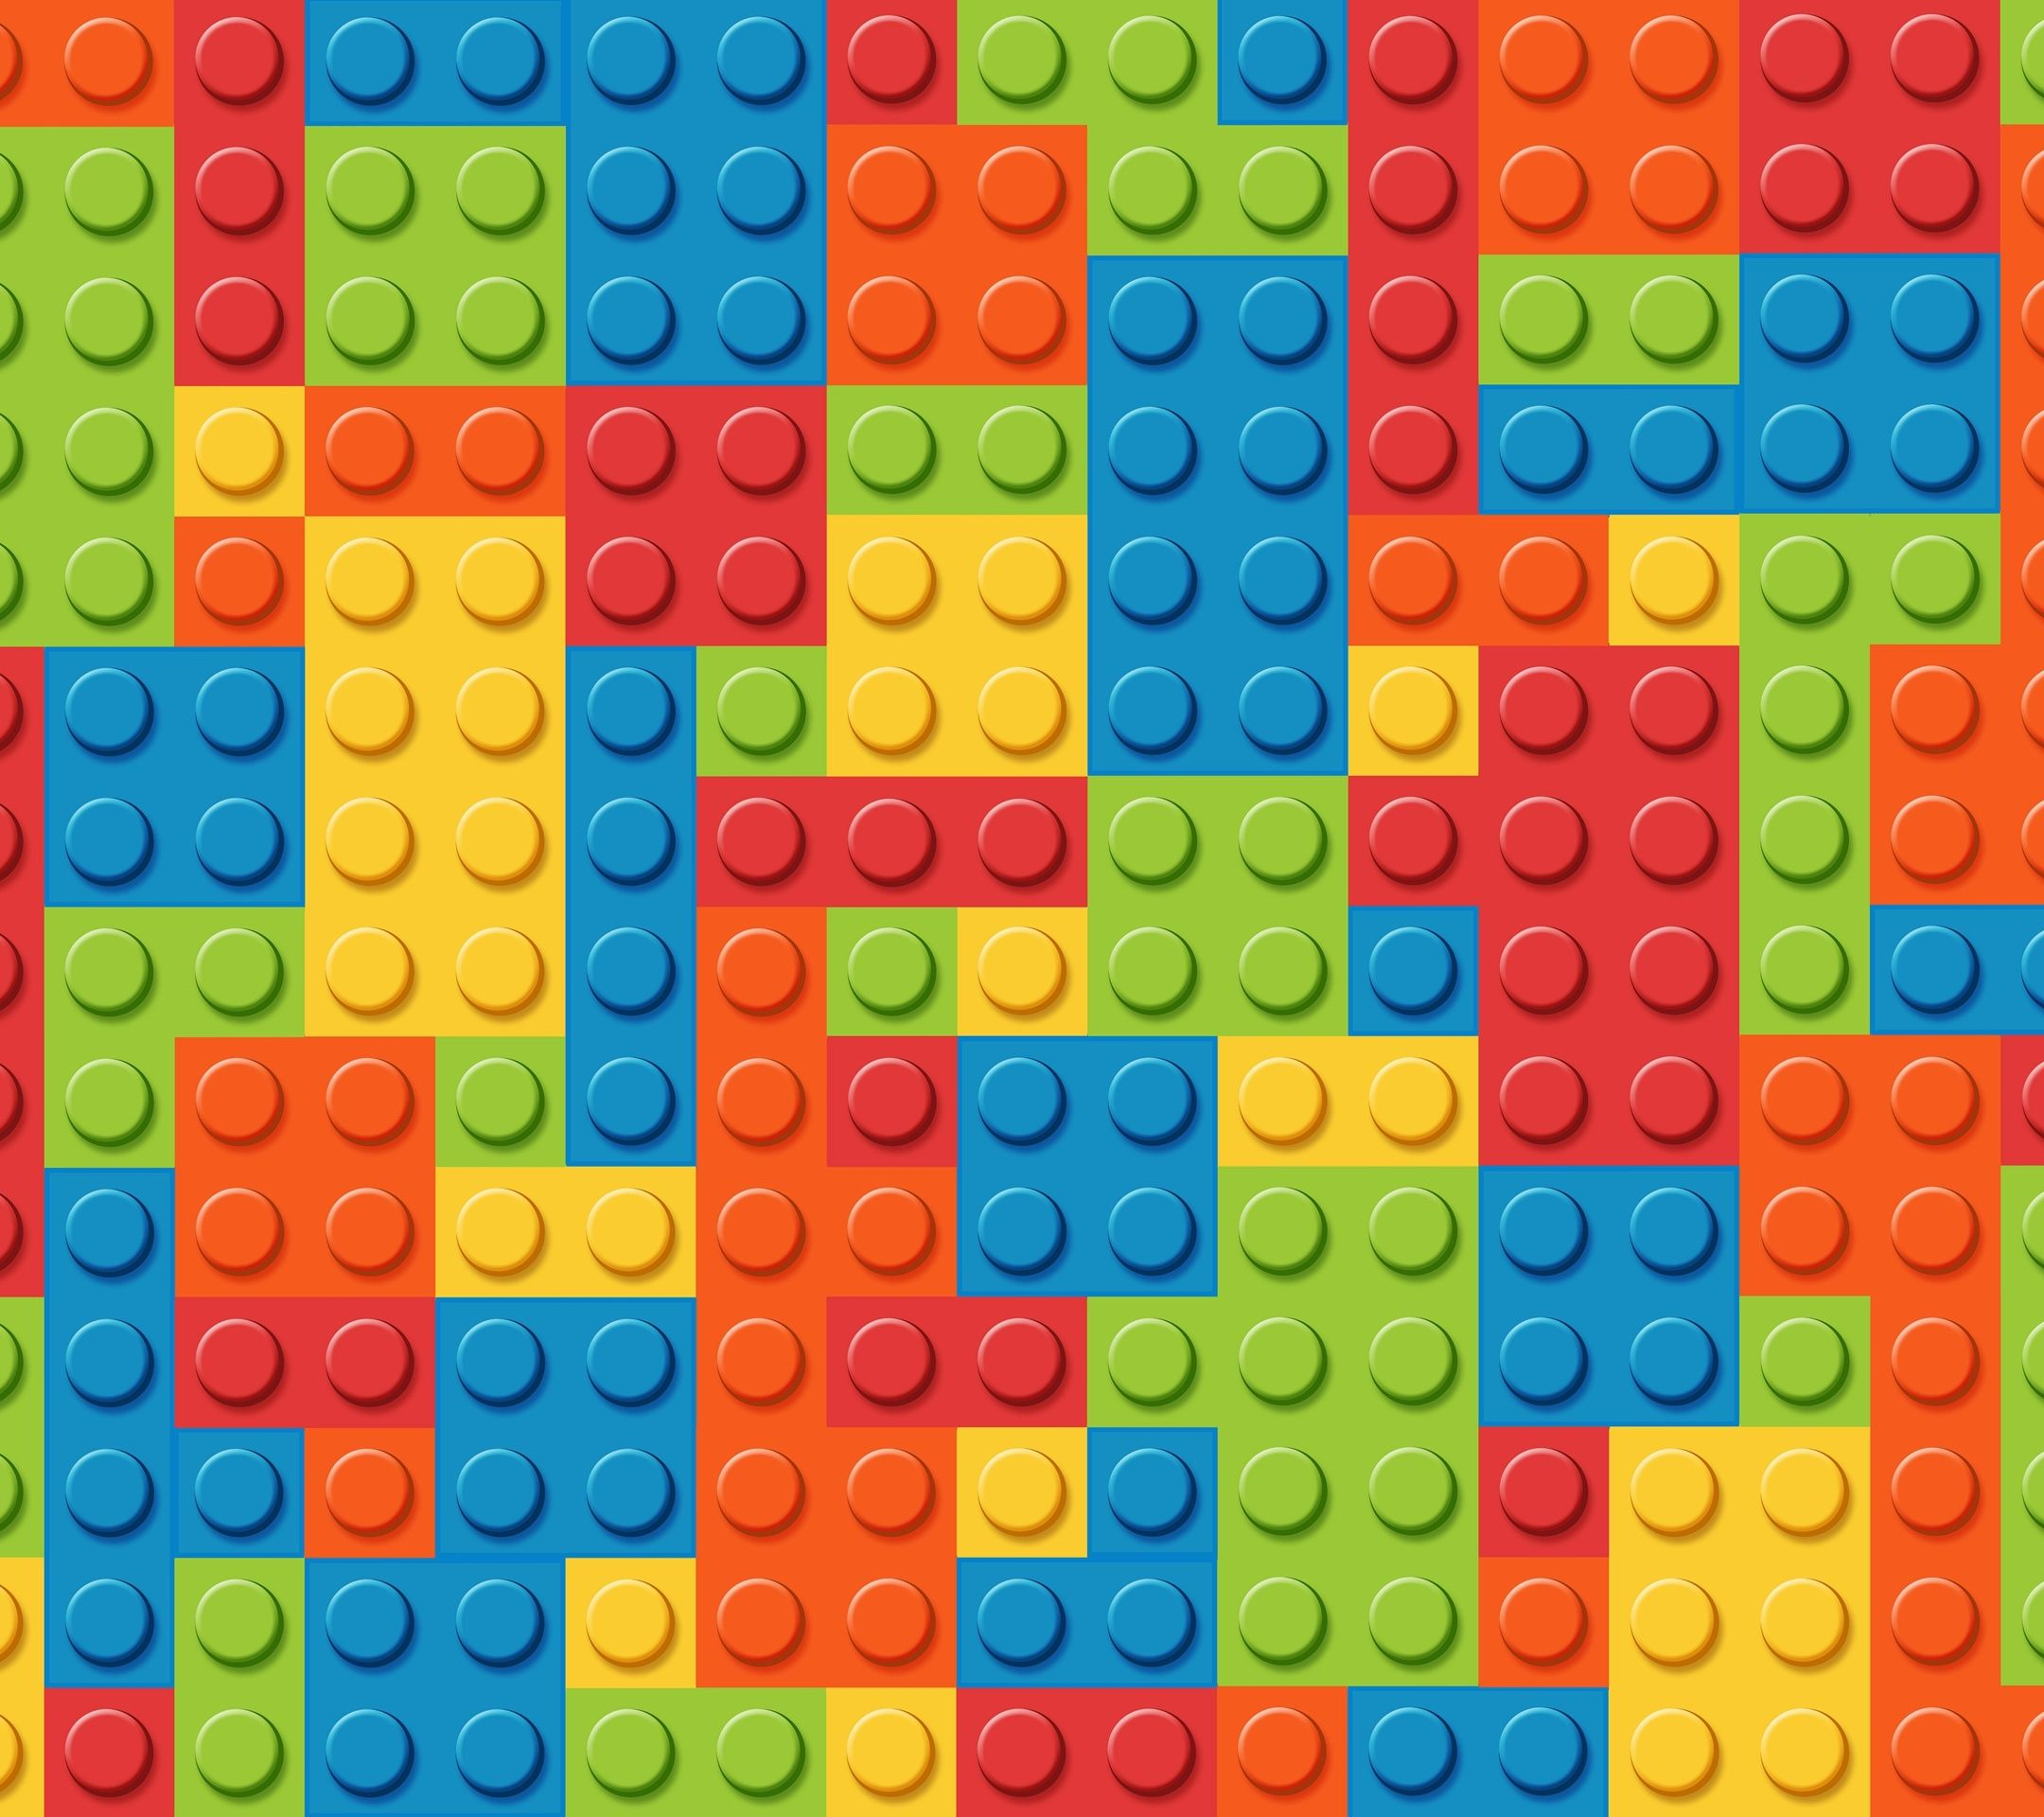 Lego Background OurSweetSerendipity.com #2019 #Goals # ...